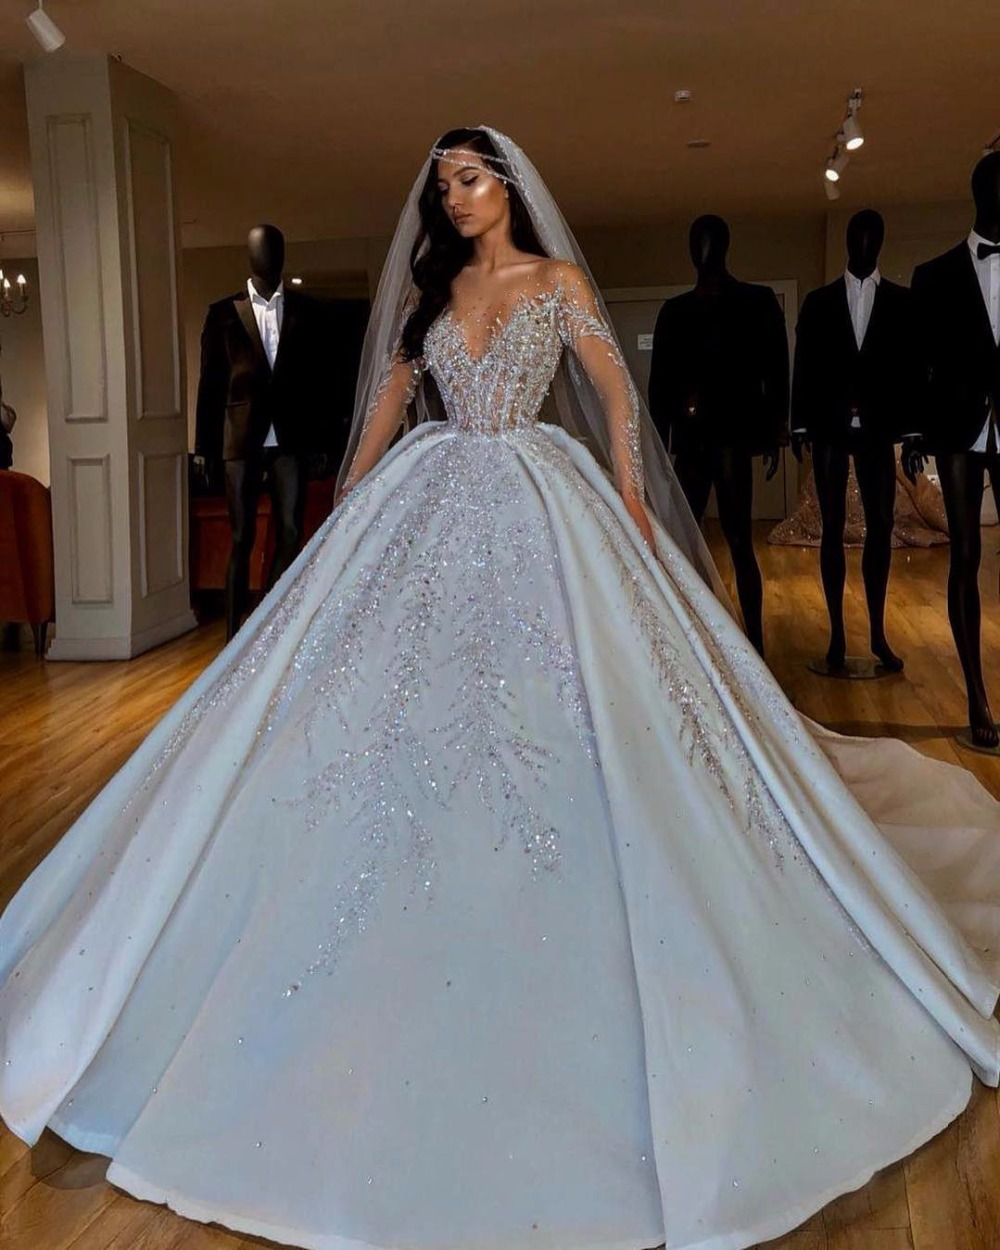 New Illusion Ball Gown Arabic Wedding Dress 2020 Luxury Beading Long Sleeves Dubai Wedding Gowns Court Train Robe De Mariee Buy At The Price Of 440 00 In Aliexpress Com Imall Com